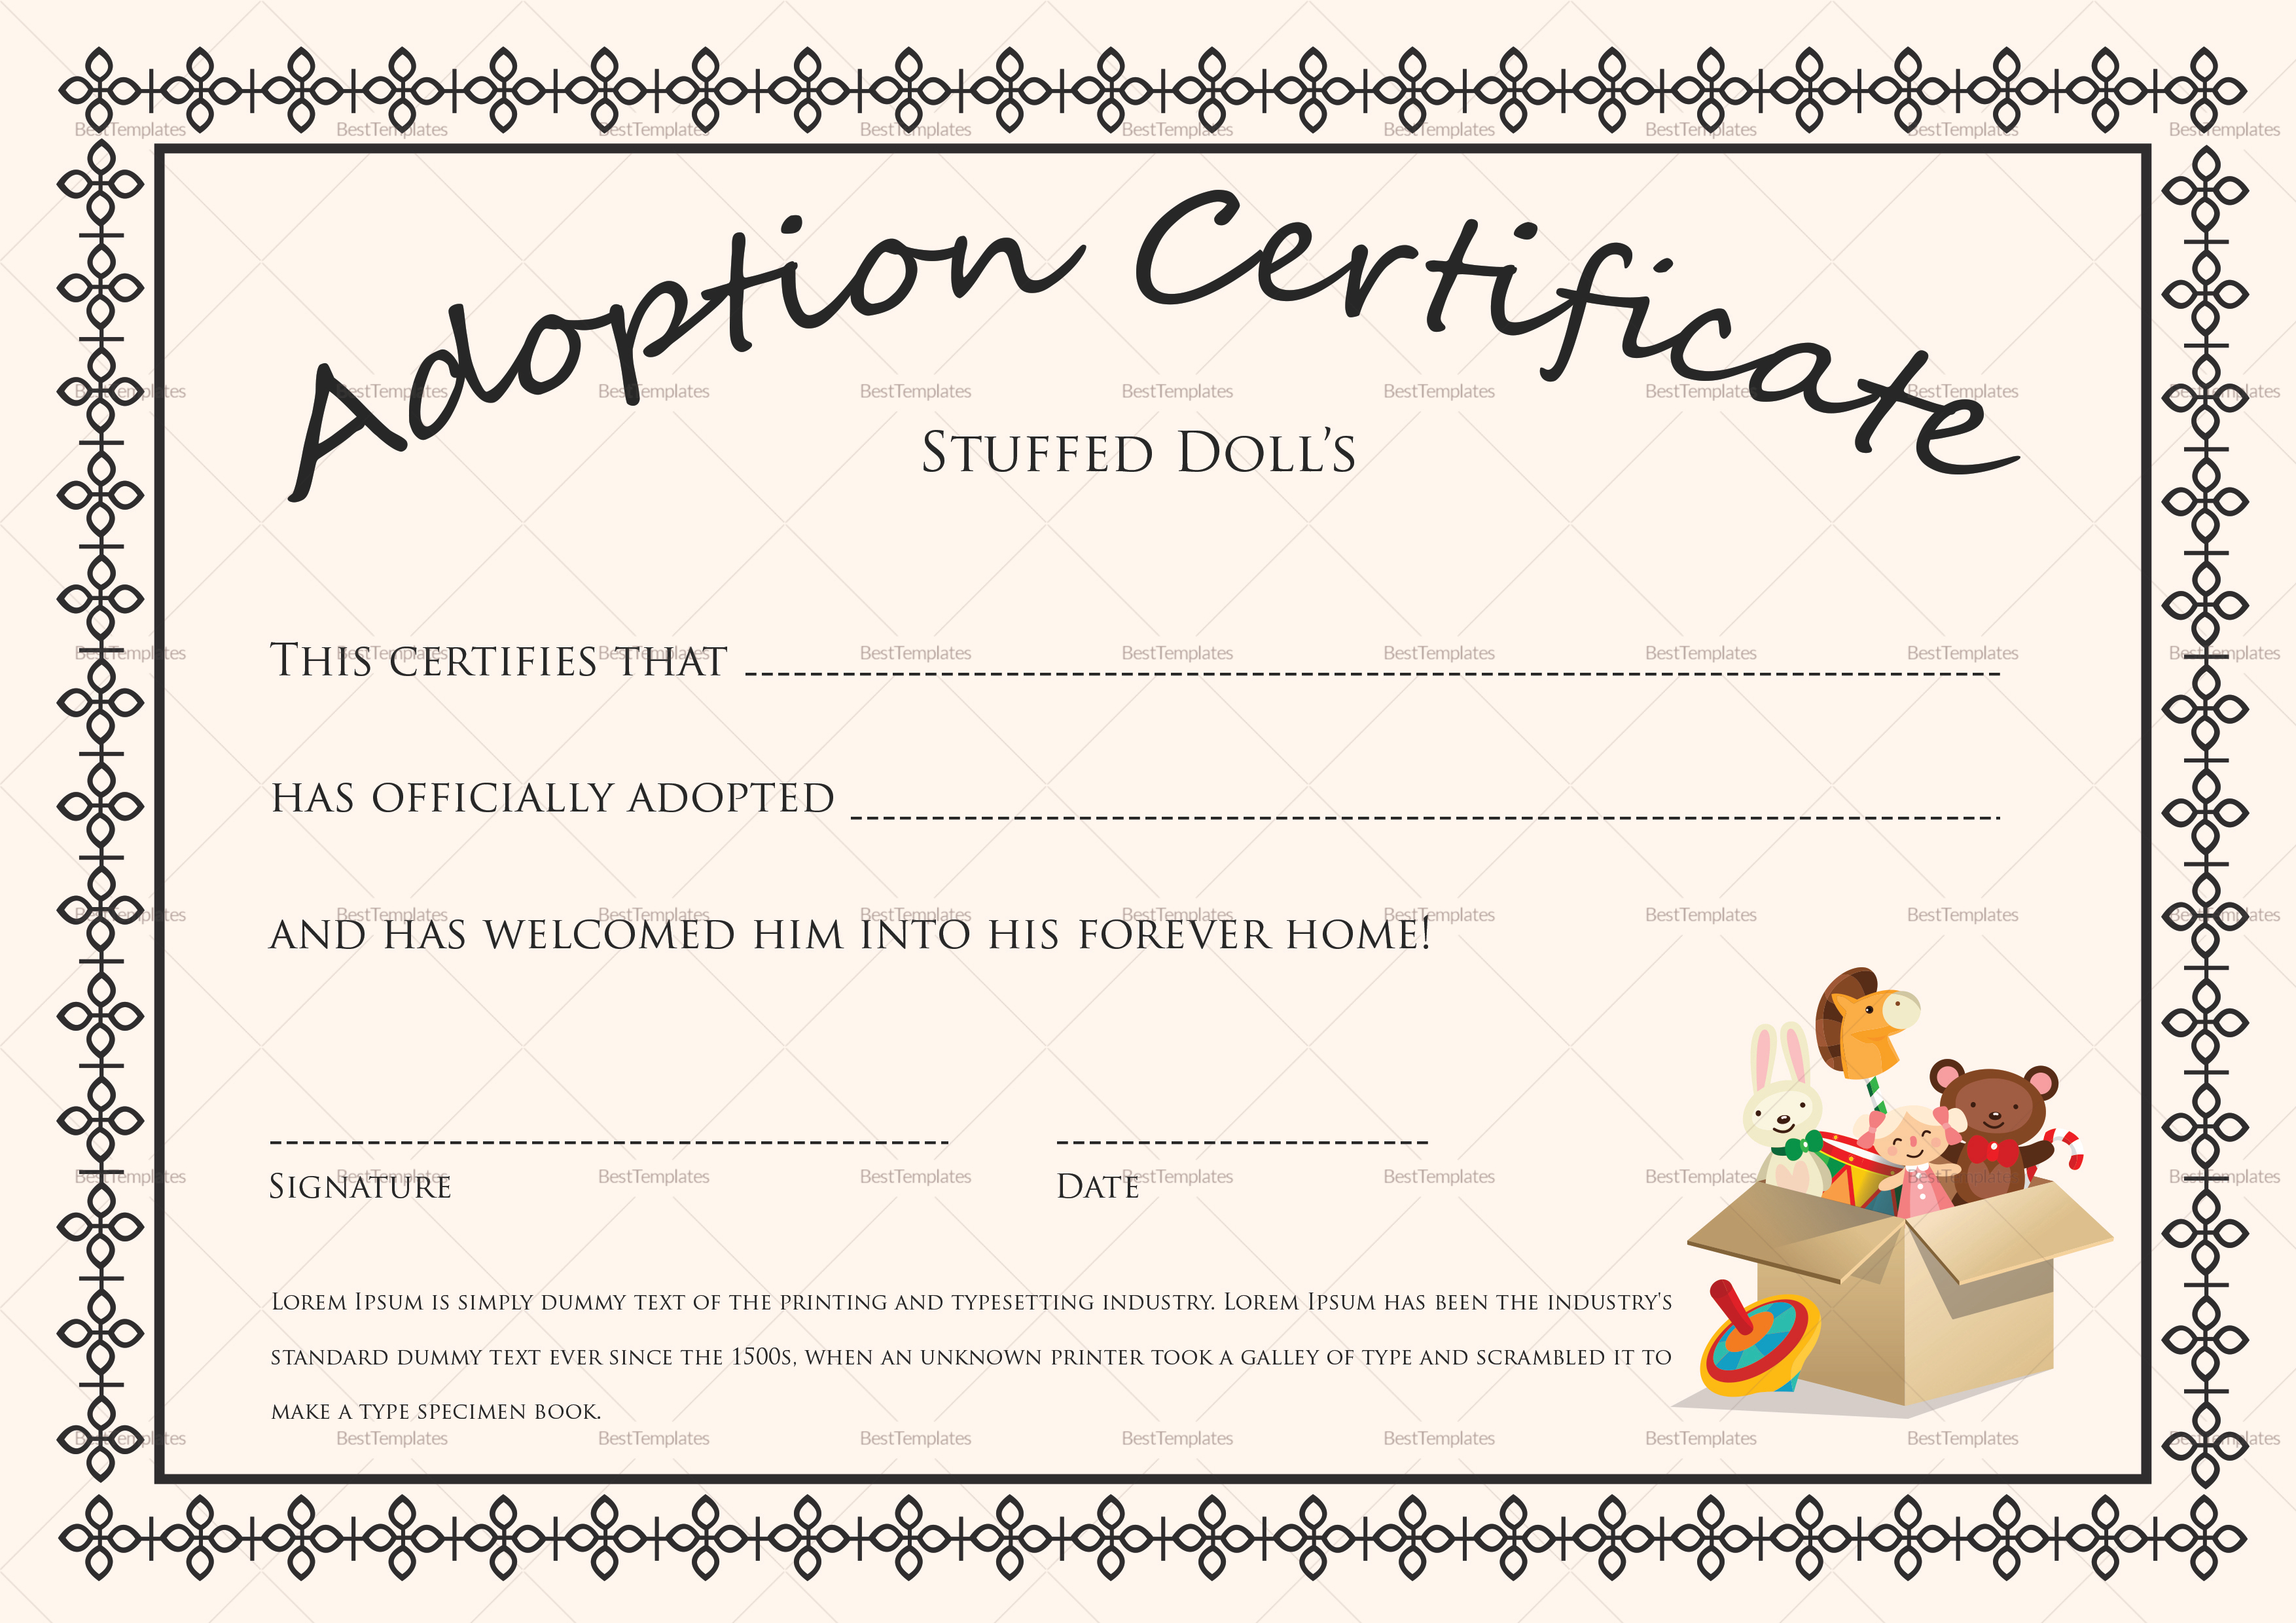 Adoption Certificate Template Free Download 200 Certificates In - Fake Adoption Certificate Free Printable